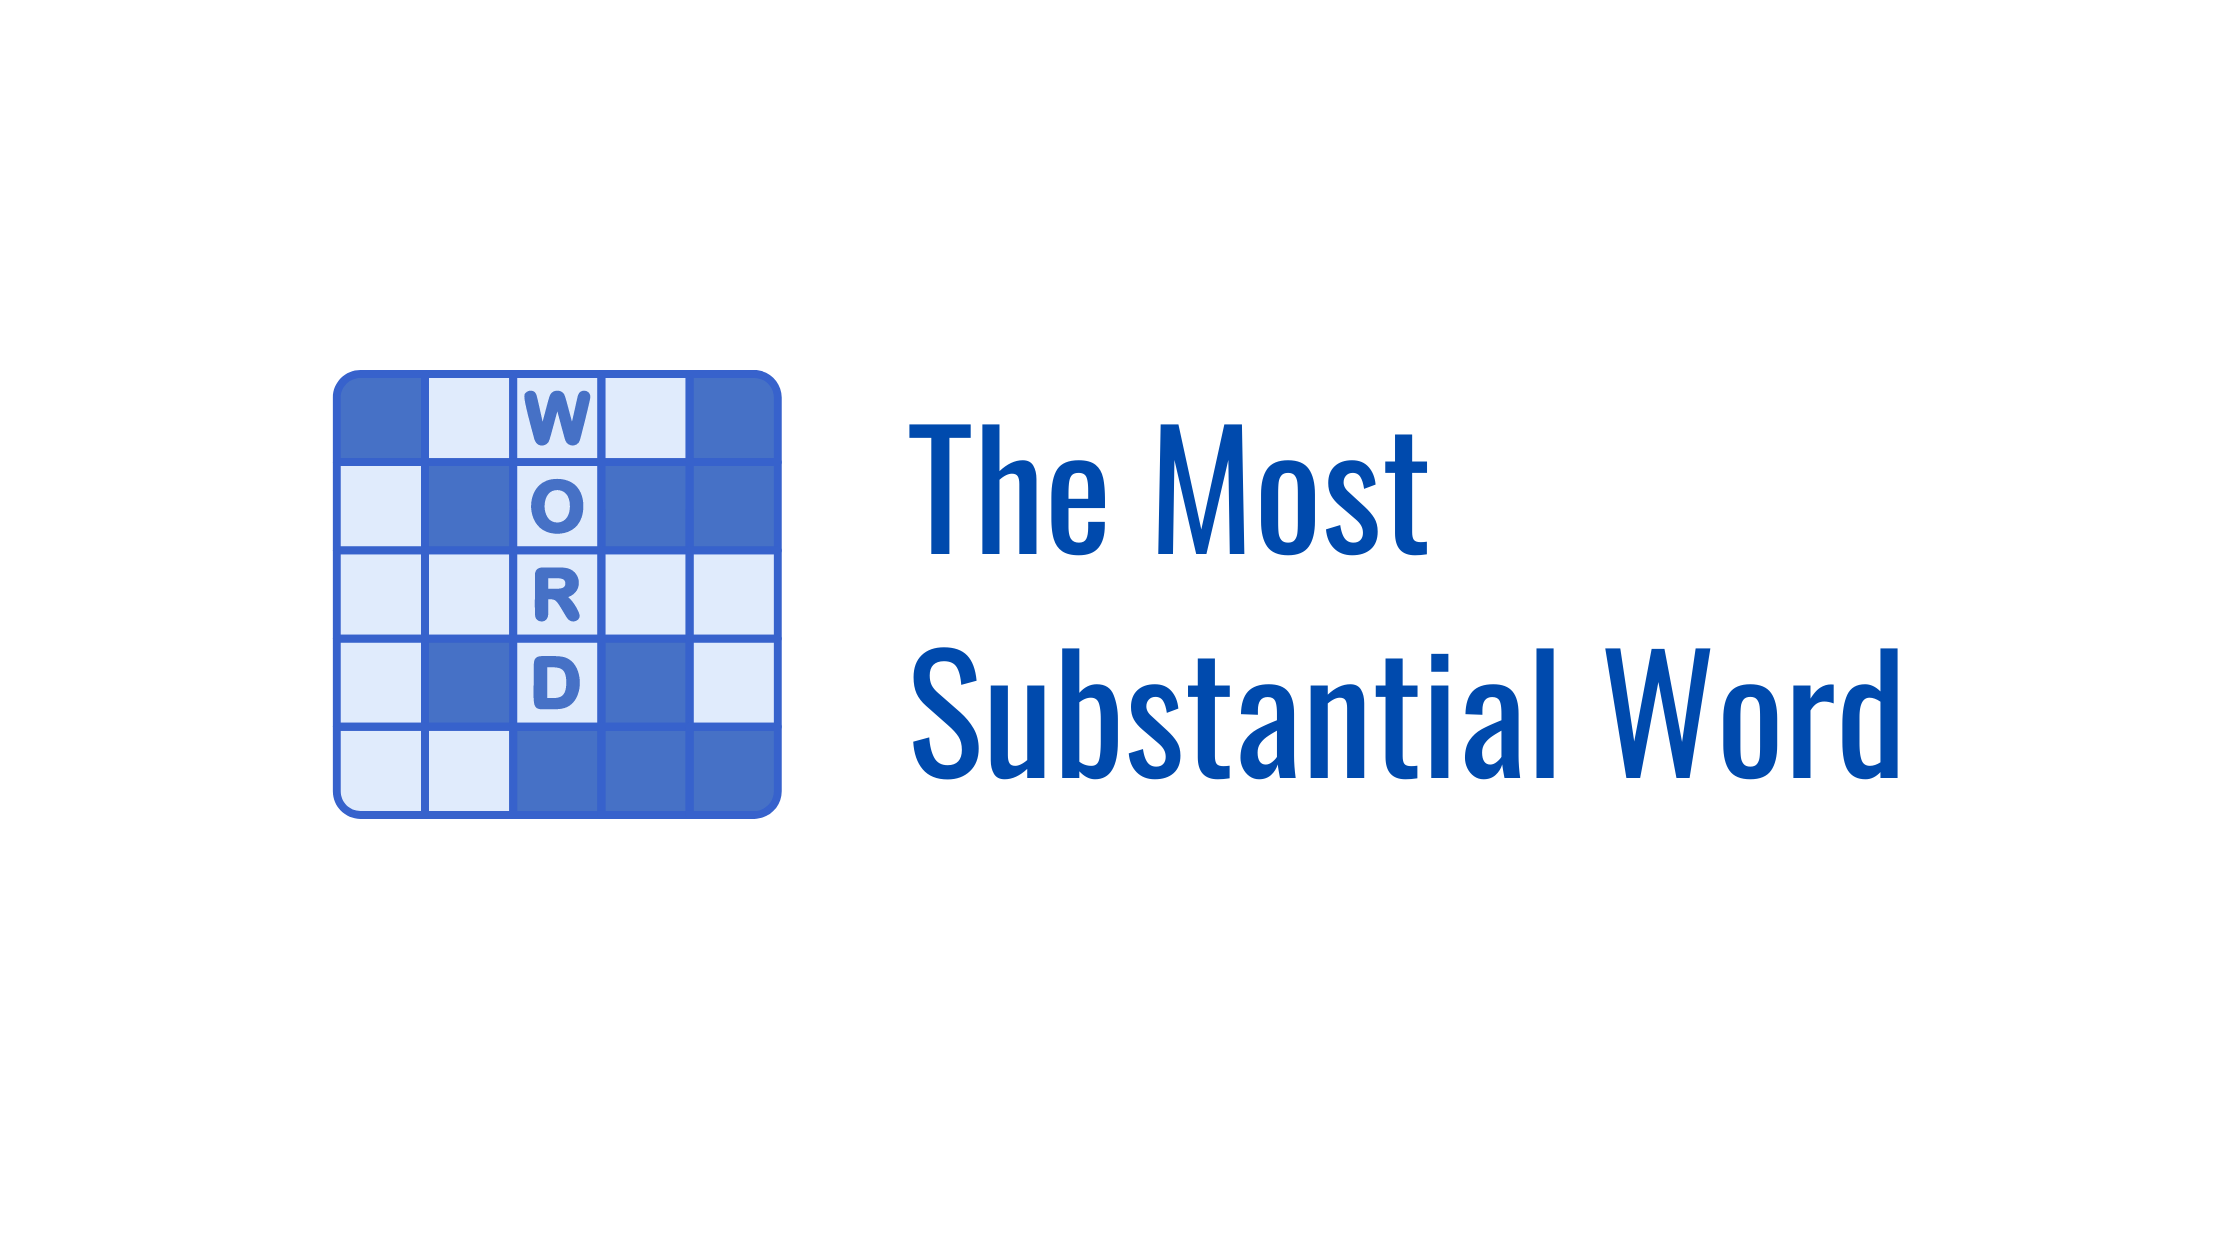 The Most Substantial Word